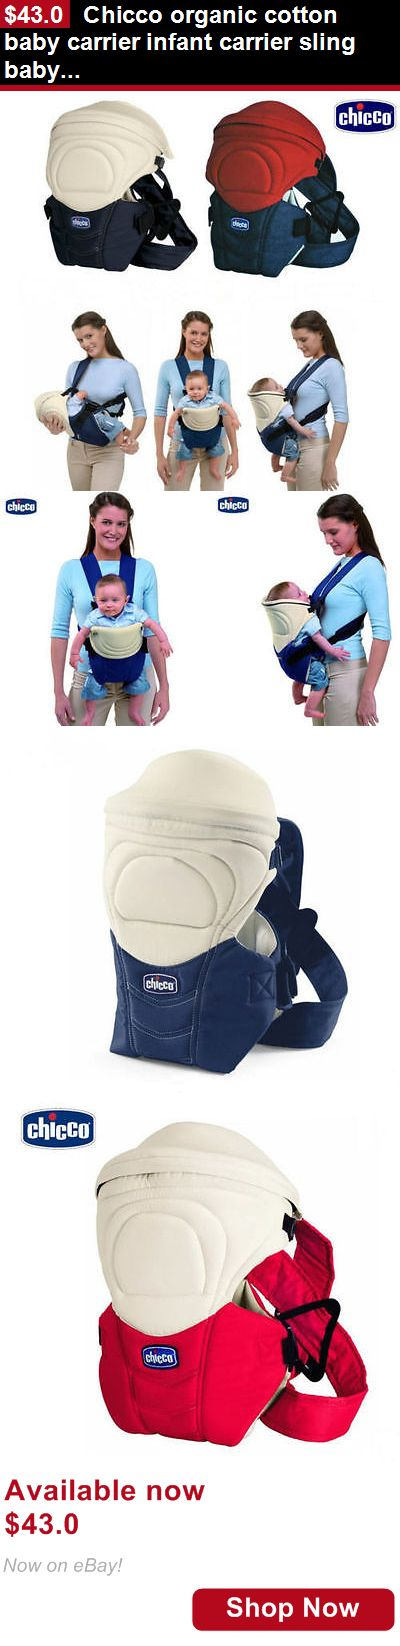 Baby Carriers and Slings and Backpacks: Chicco Organic Cotton Baby Carrier Infant Carrier Sling Baby Suspenders Classic BUY IT NOW ONLY: $43.0